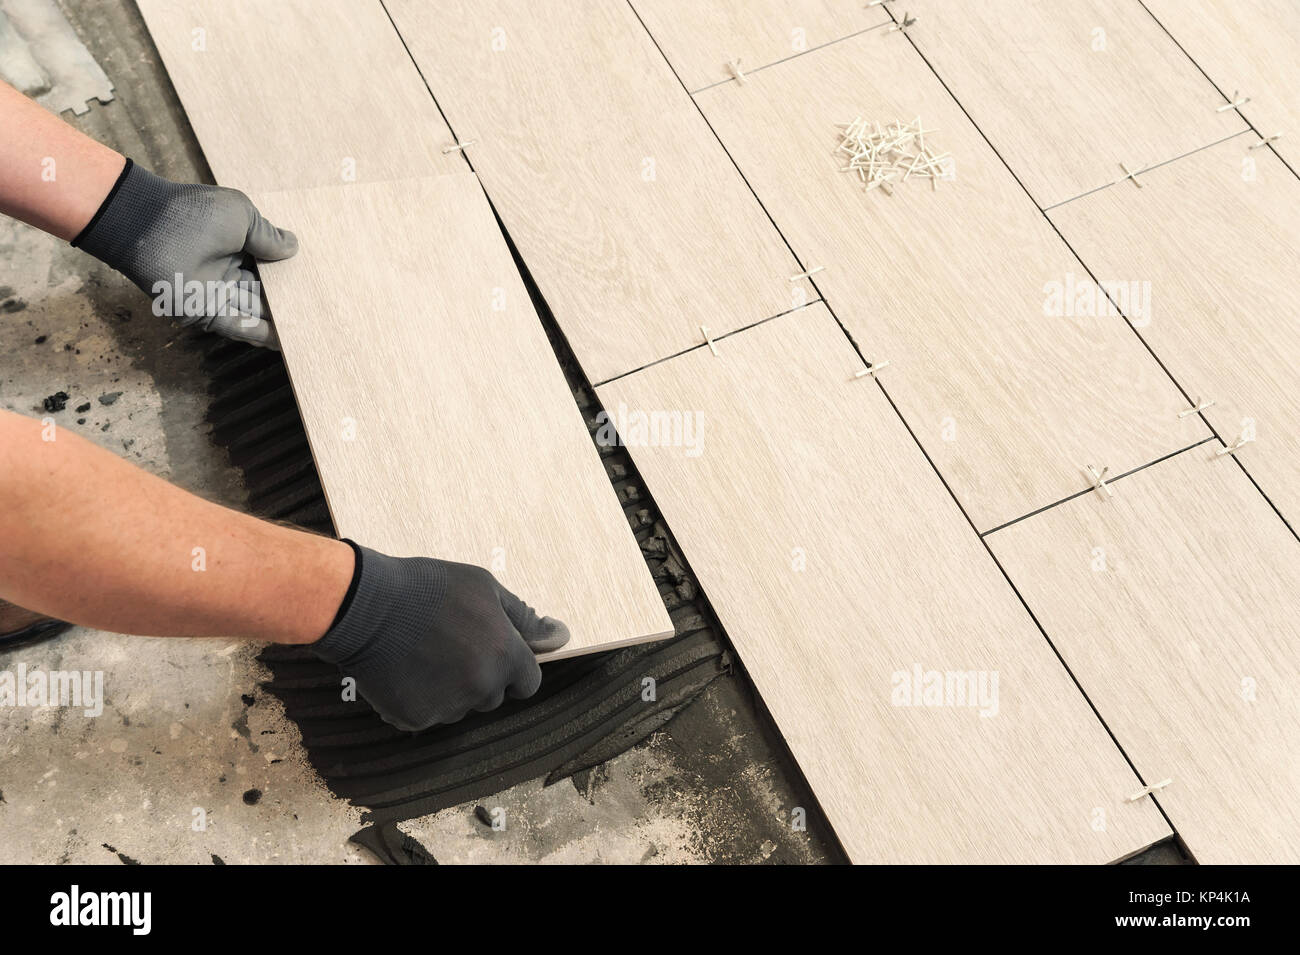 Laying Ceramic Tiles. Man placing ceramic floor tile in position ...